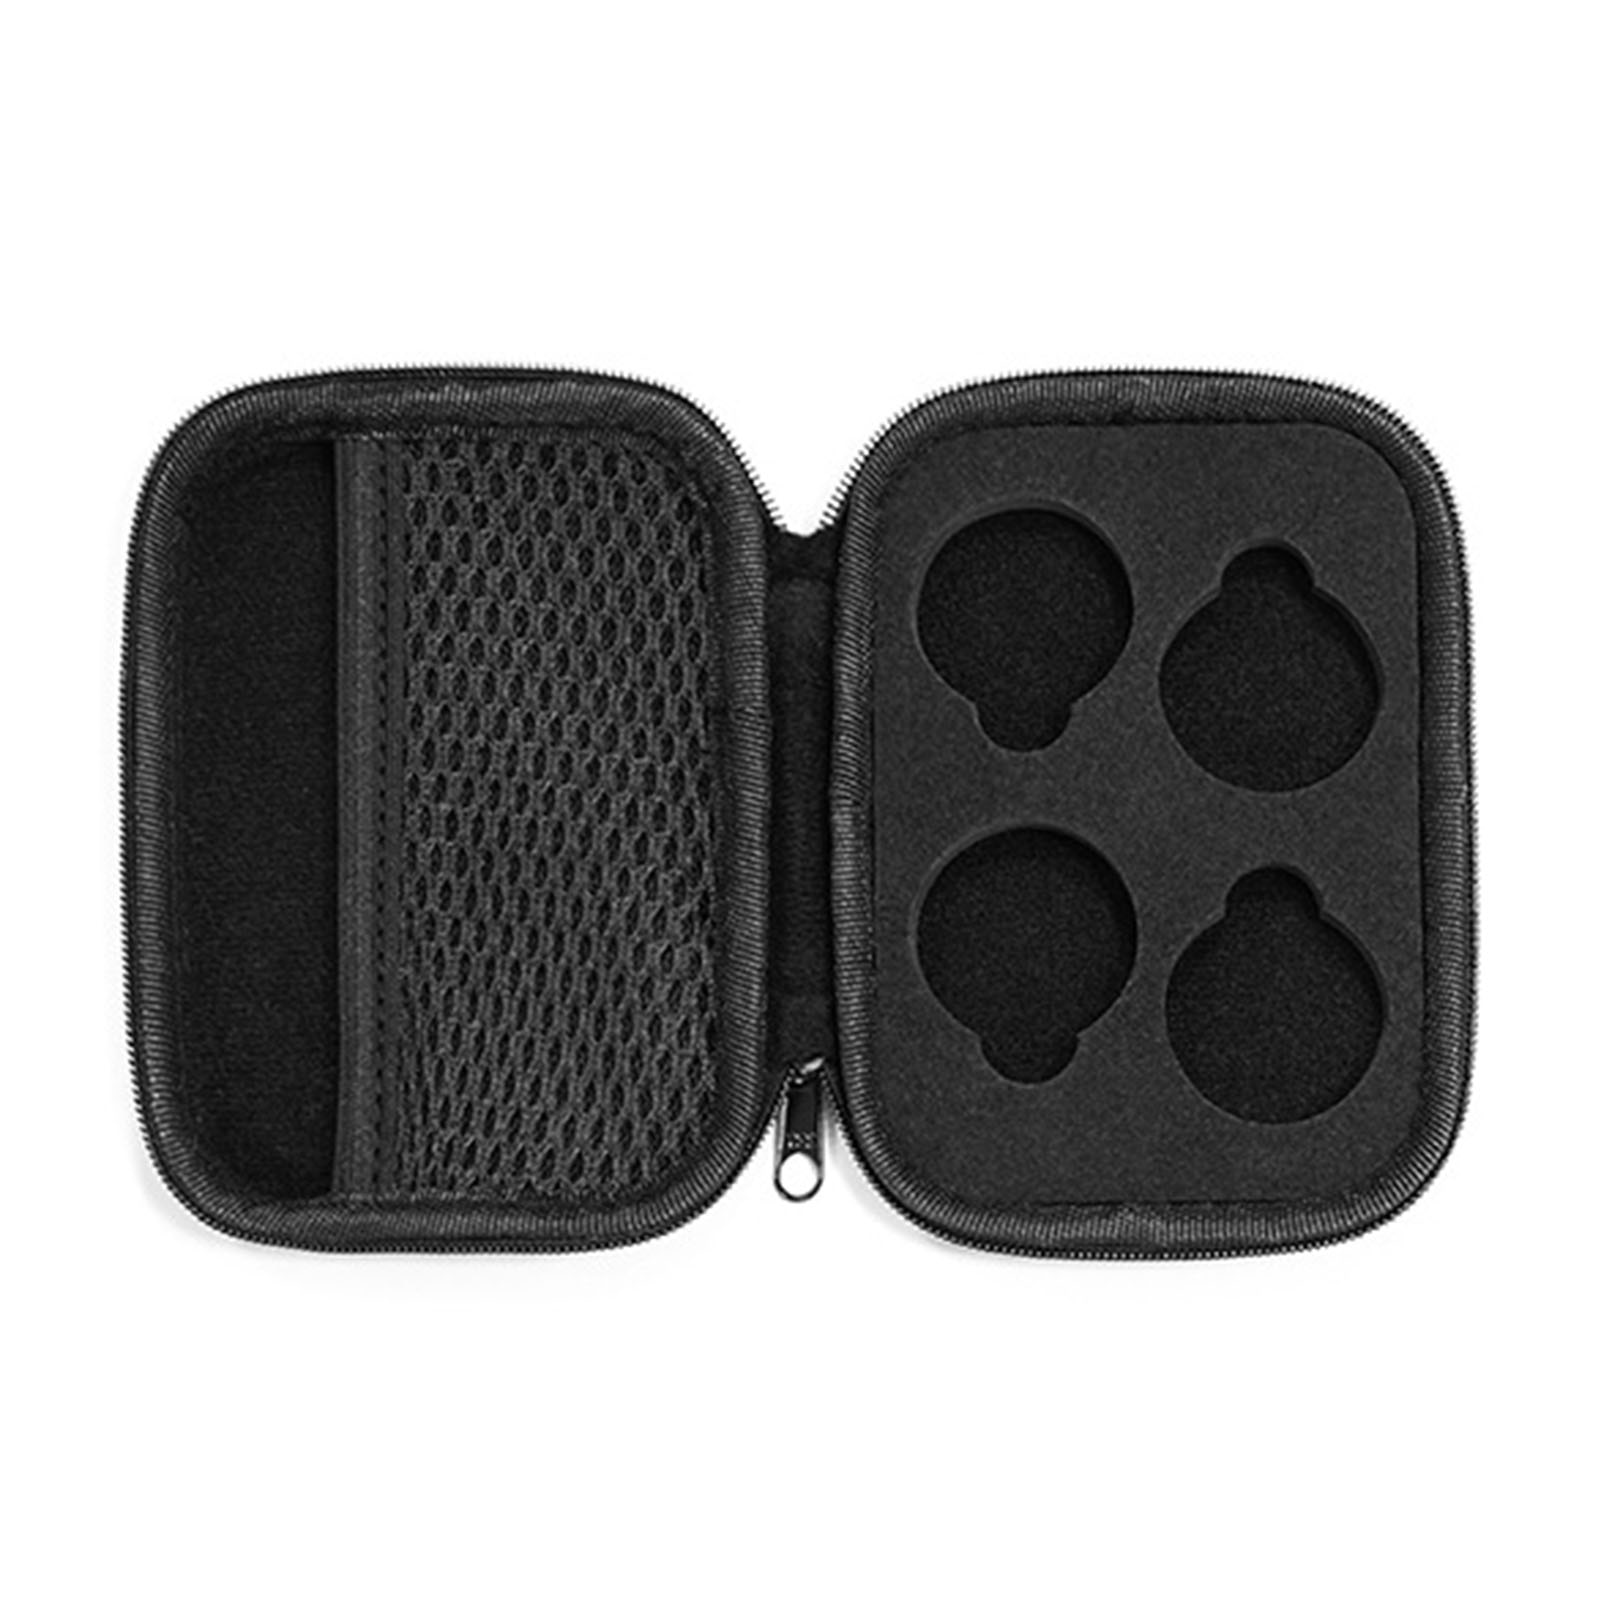 Shockproof Zippered Storage Organizer Bag Protective Carry Case For AirTag Anti-scratch Dustproof Storage Case For Apple AirTag недорого